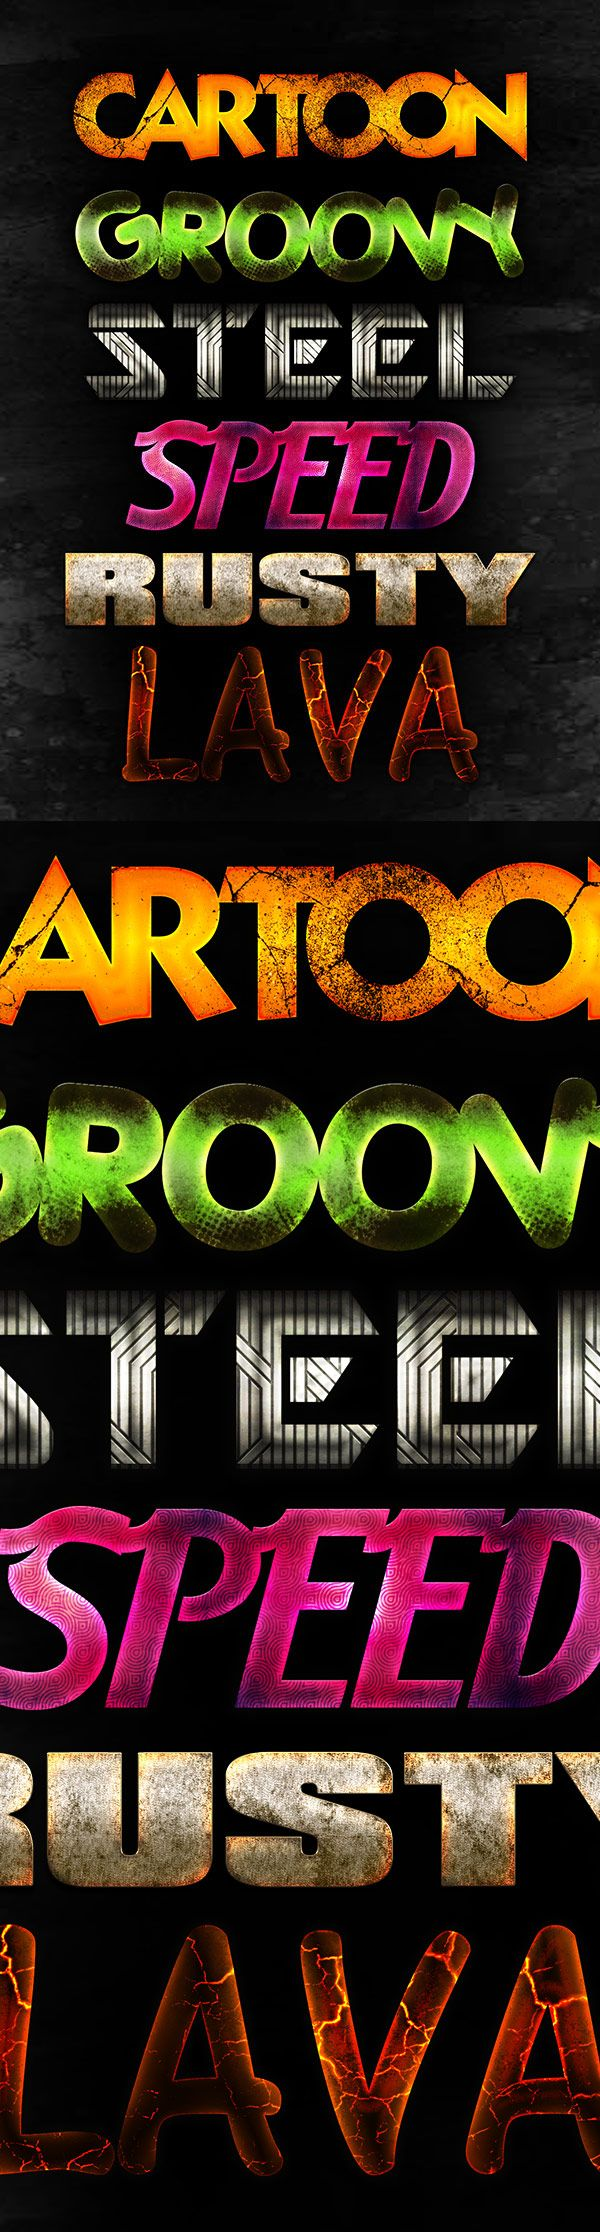 Free designs - Free PSD text effects